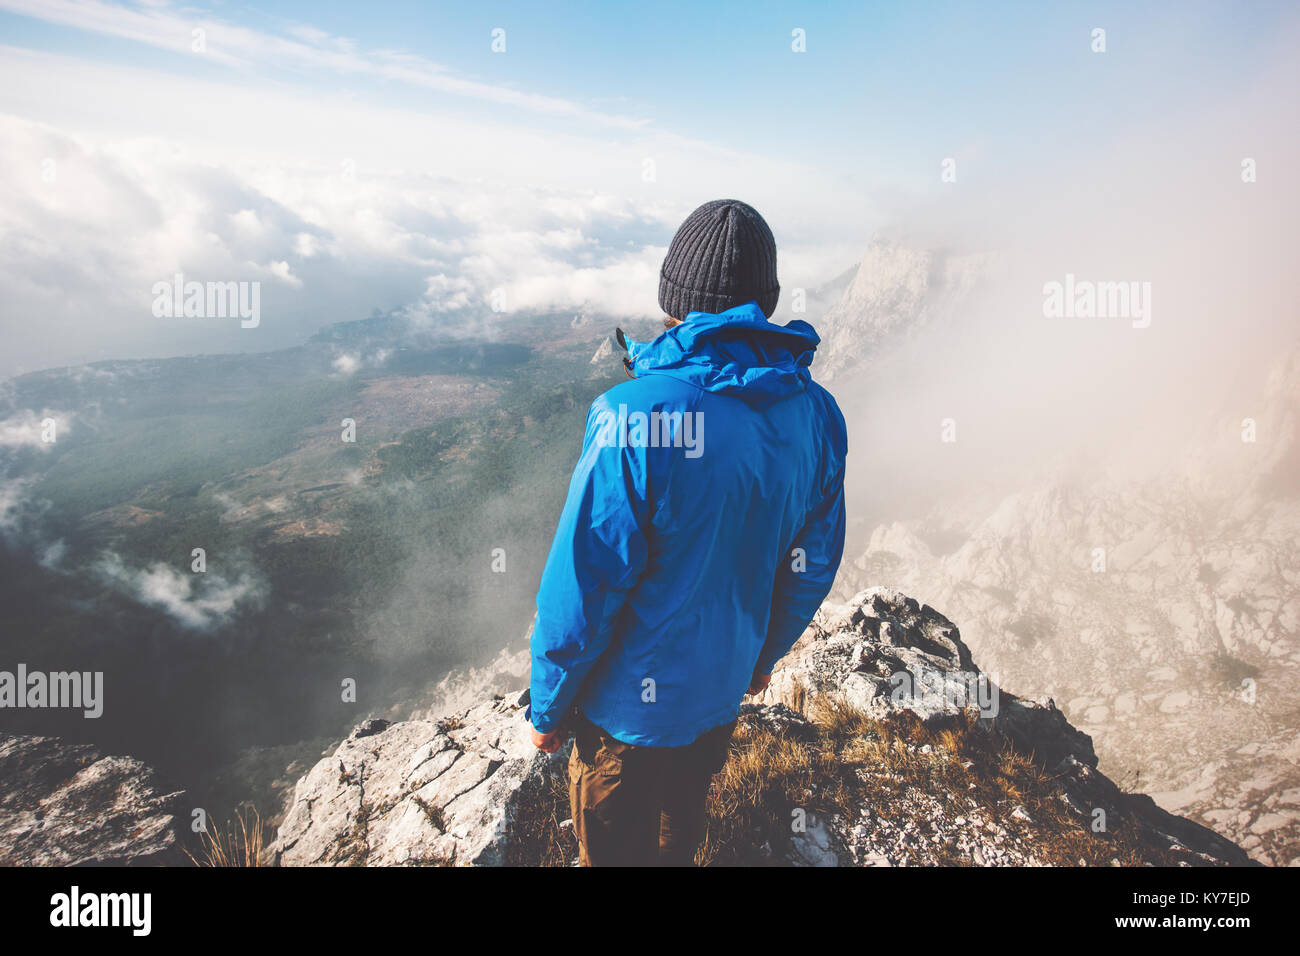 Traveler man alone on mountain summit over clouds Travel Lifestyle success concept adventure active vacations outdoor - Stock Image